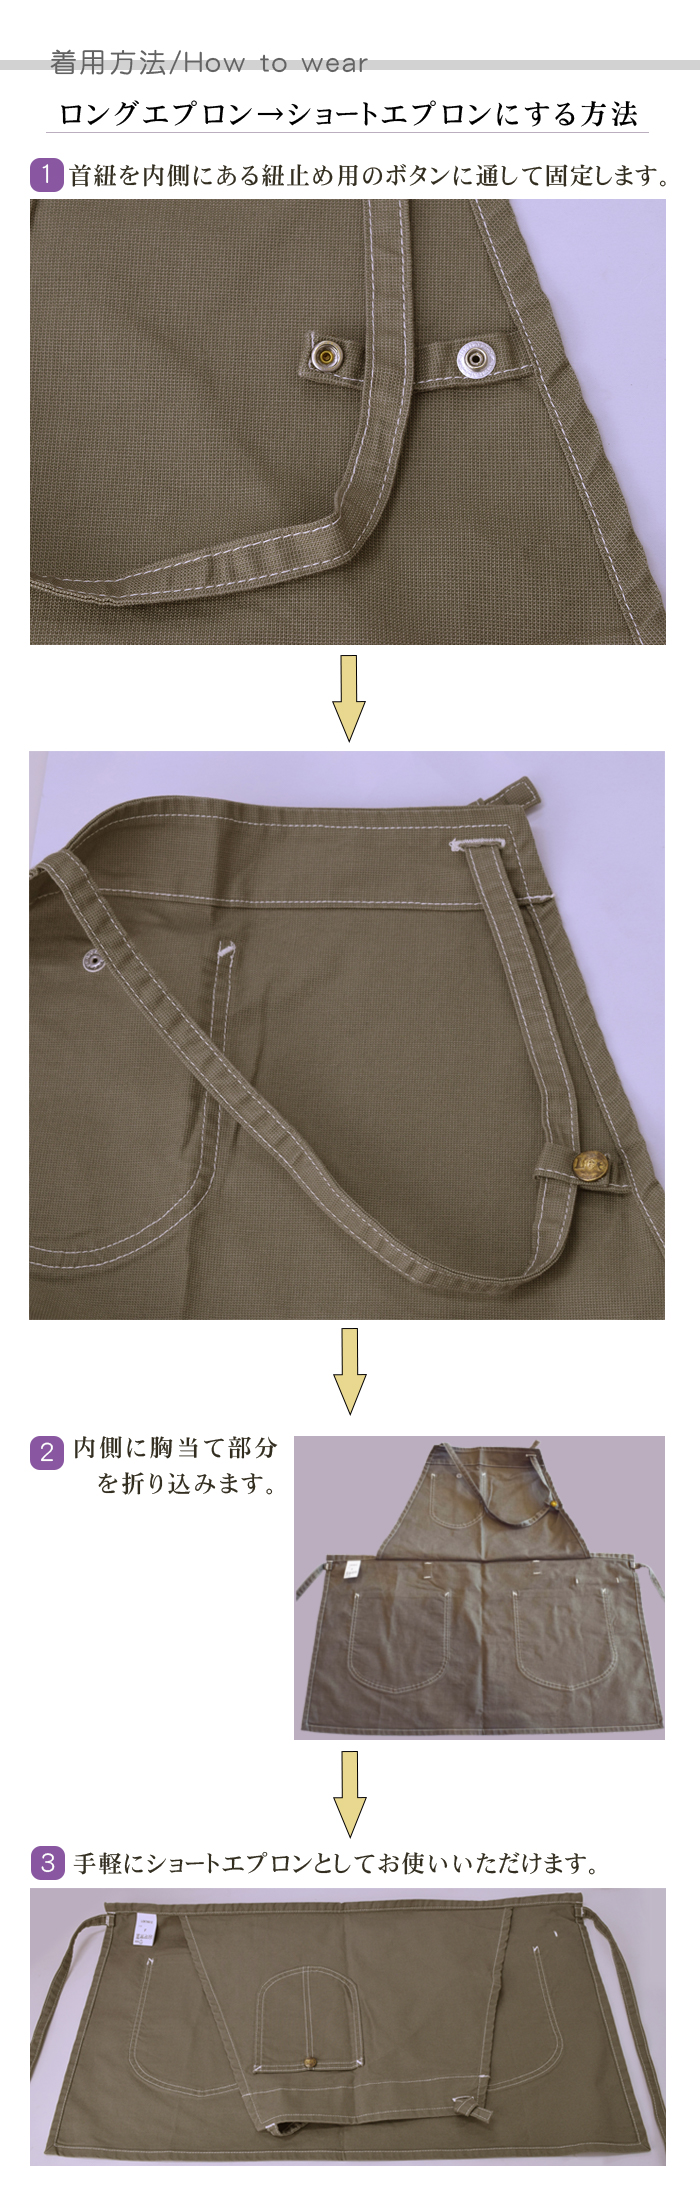 2wayエプロン カフェ飲食店作業用ストレッチ素材の制服 『Lee workwear』(男女兼用) 着用方法説明